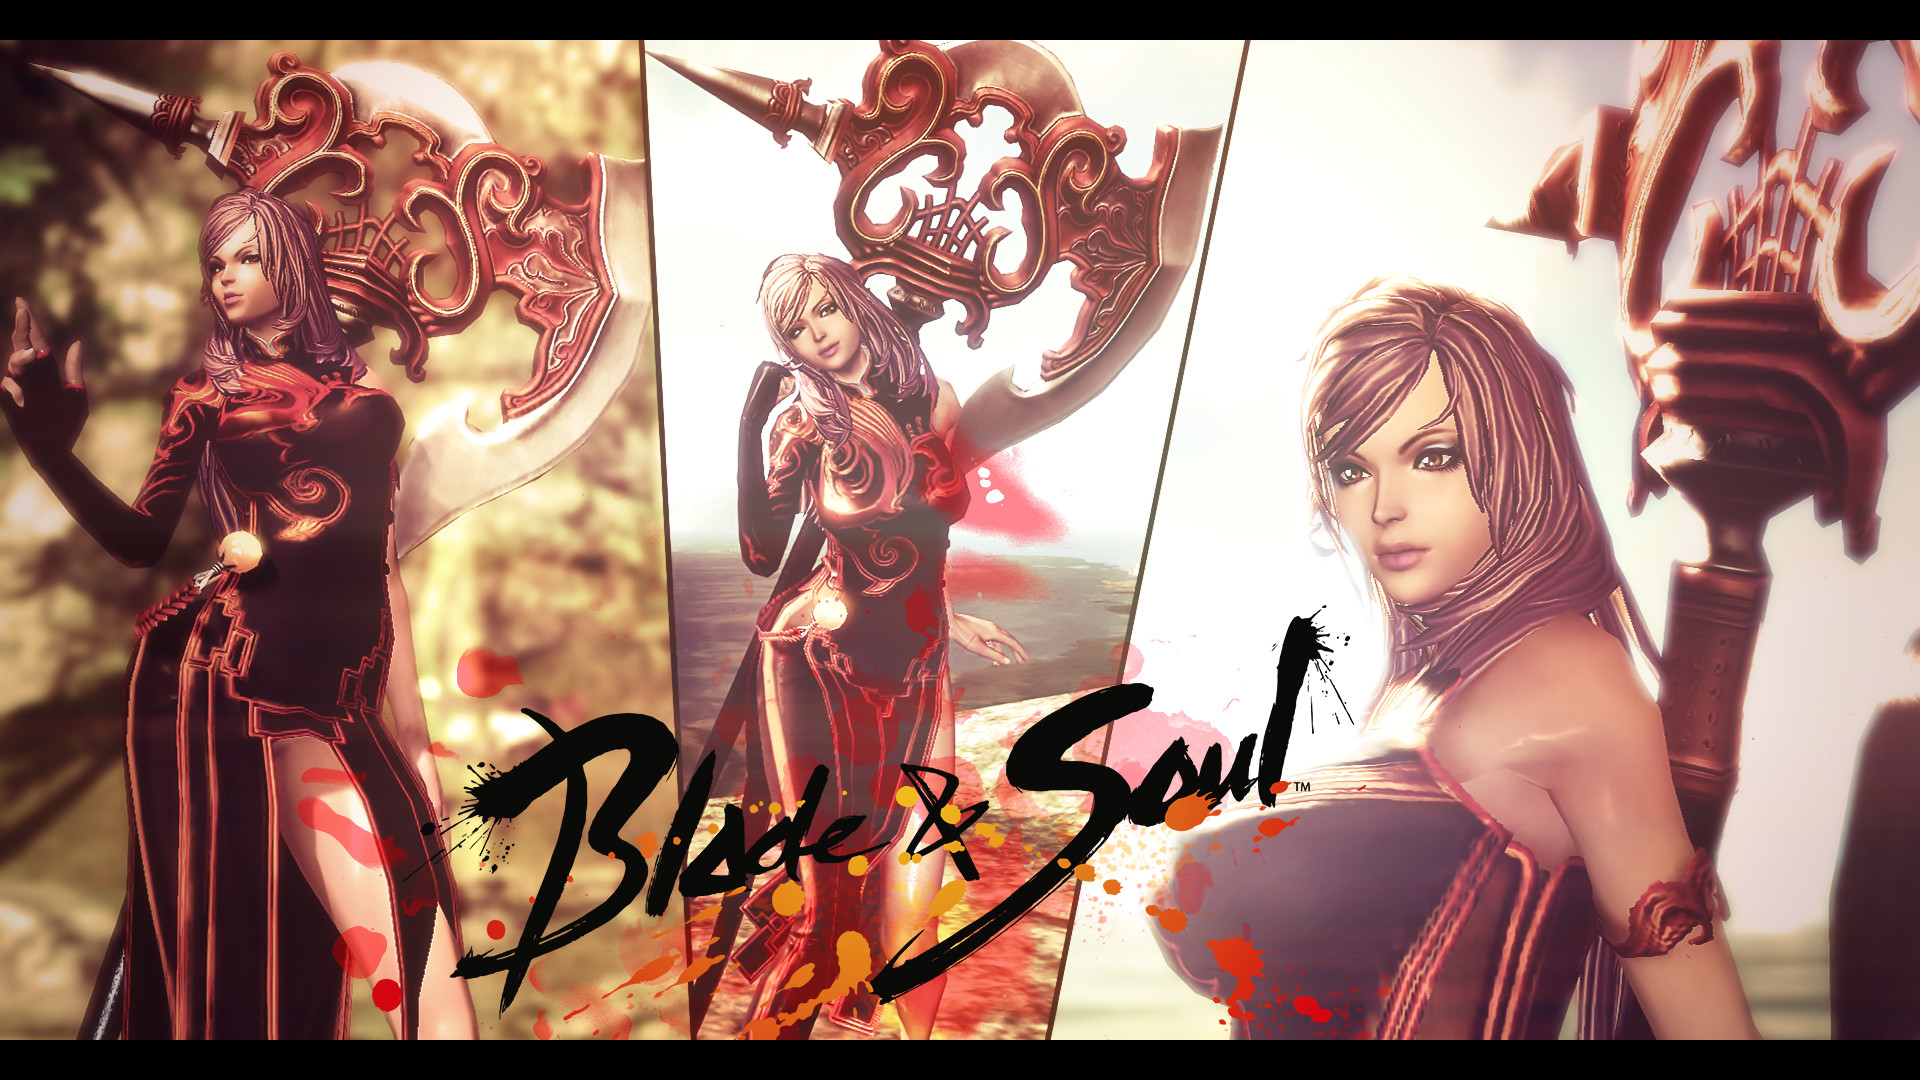 … Blade and Soul wallpaper – my character by kampinis